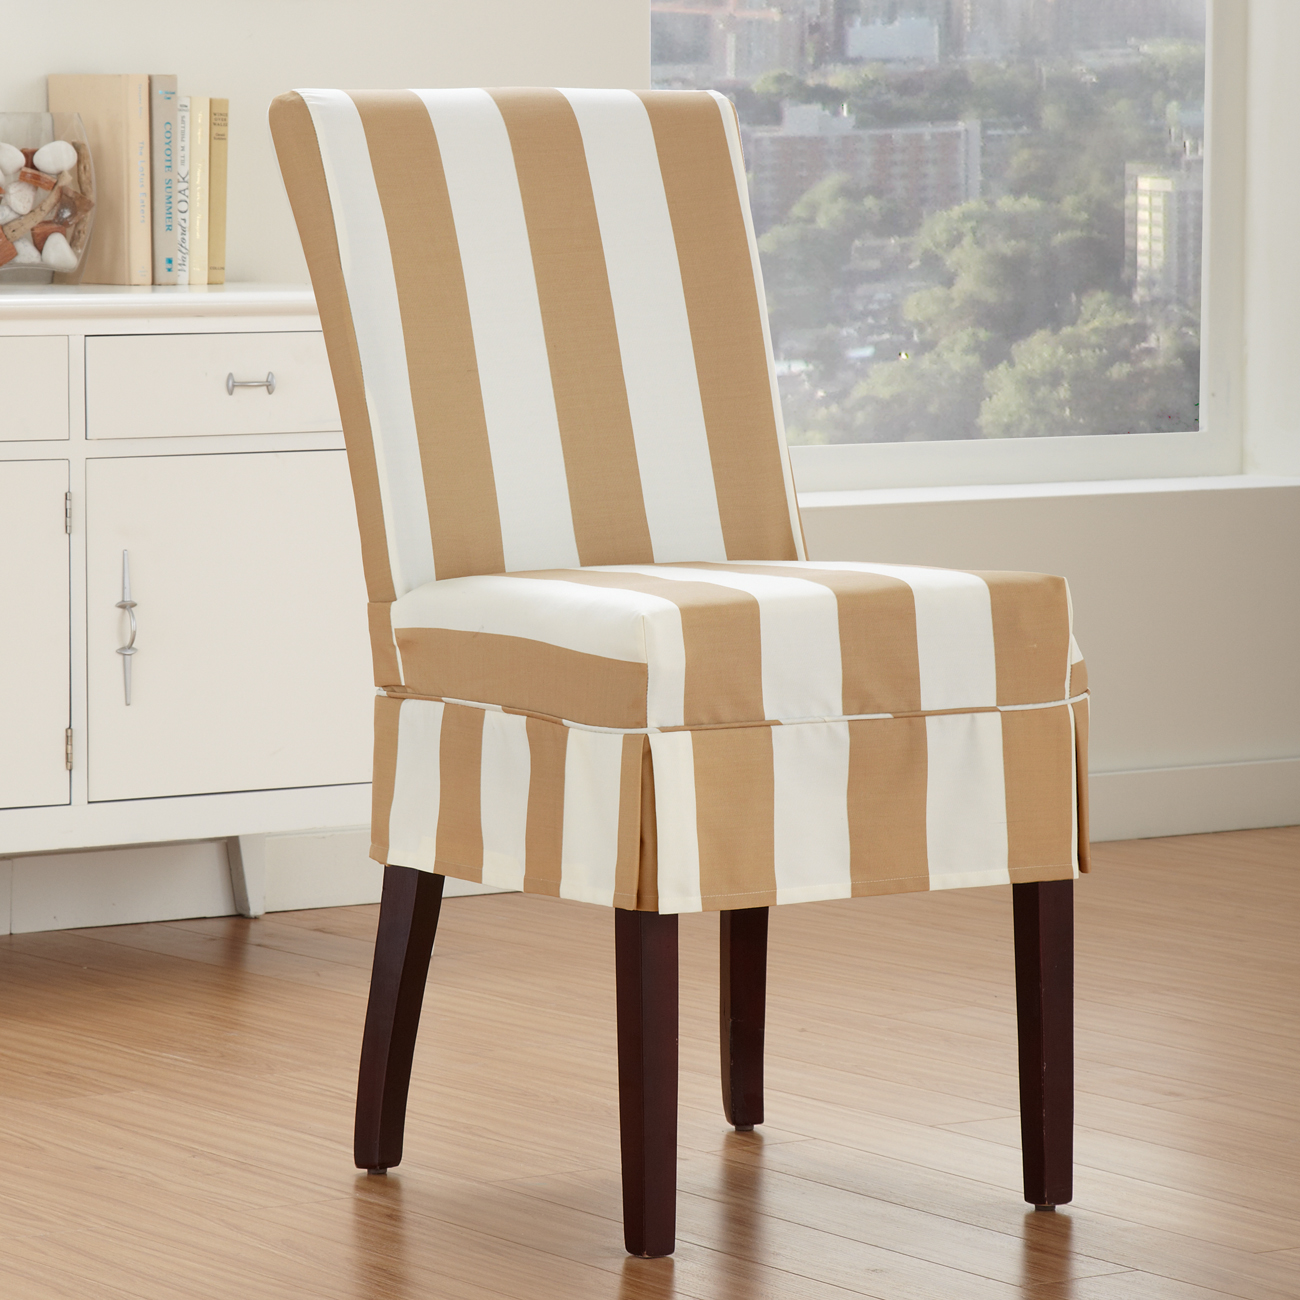 fabric dining chair covers - large and beautiful photos. photo to